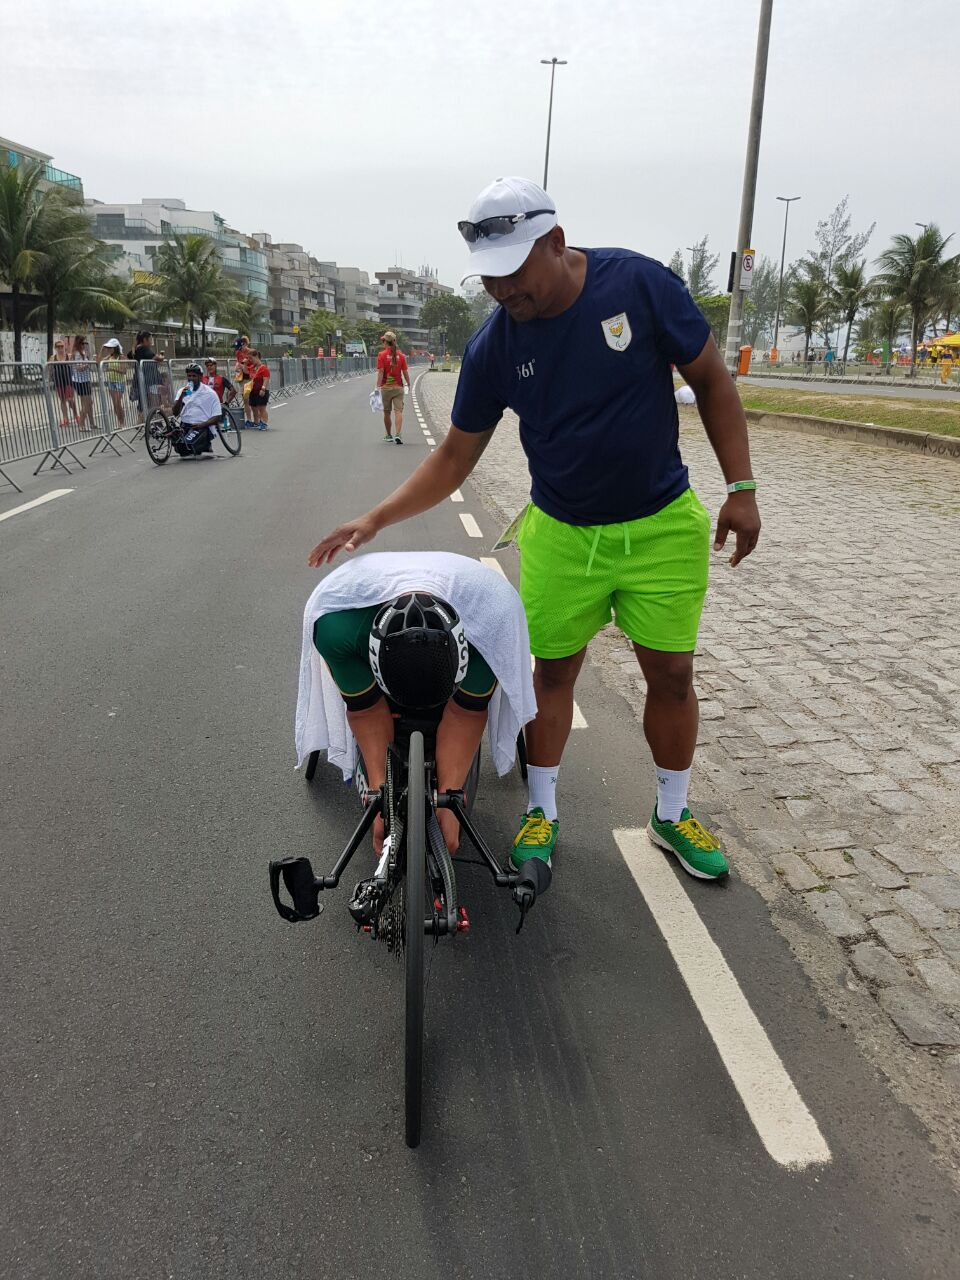 An exhausted but overwhelmed Ernst van Dyk takes a moment to realise his Gold medal win in the Men's H5 Road Race at the 2016 Rio Paralympics on Thursday 15 September.